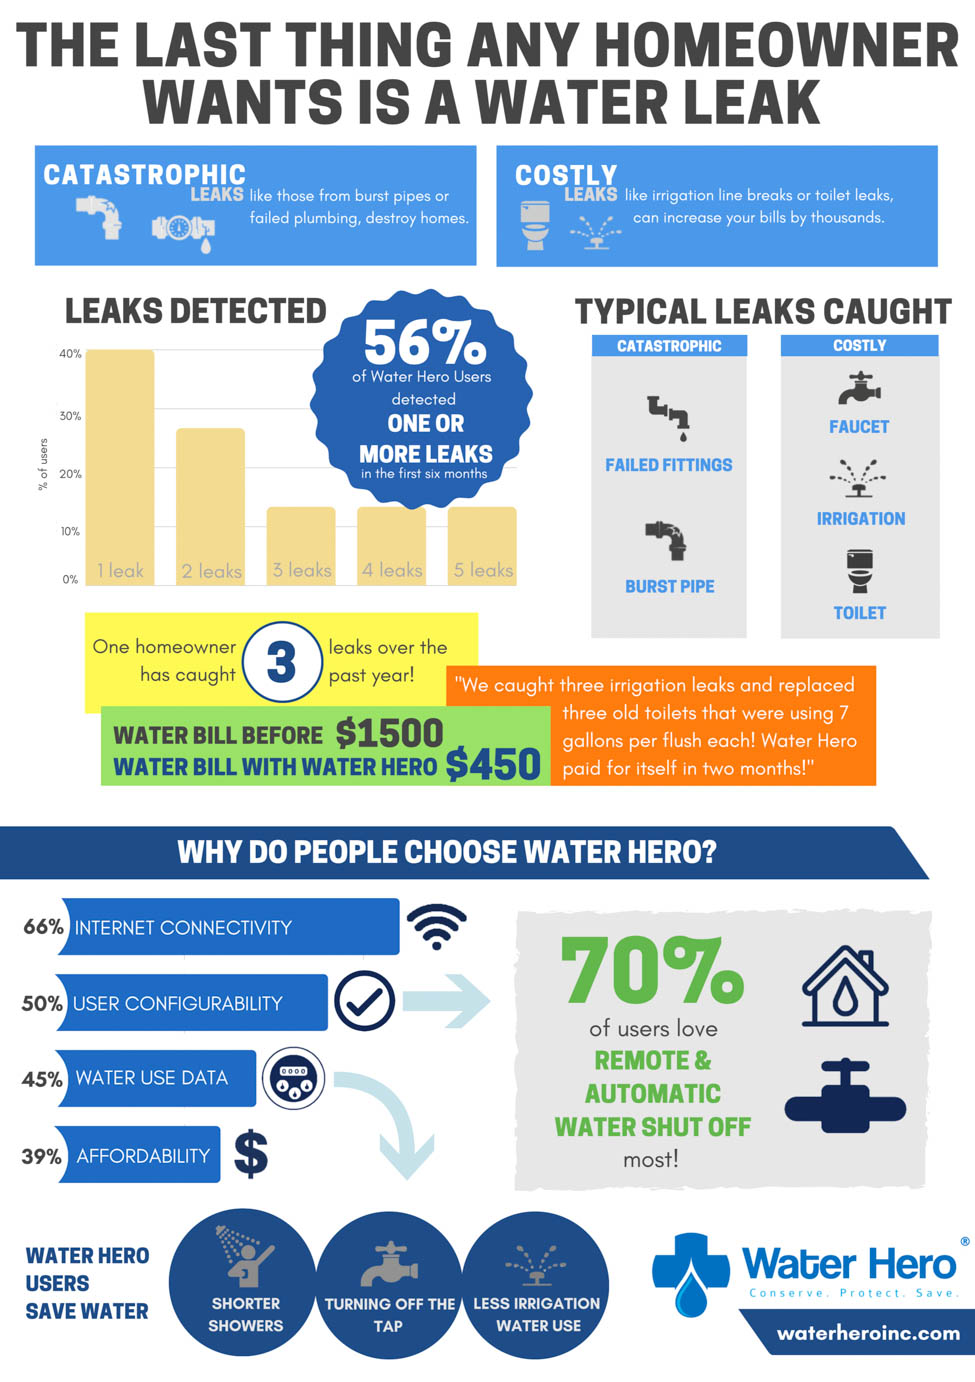 Infographic: The Last Thing Any Homeowner Wants Is a Water Leak. Courtesy: Water Hero.